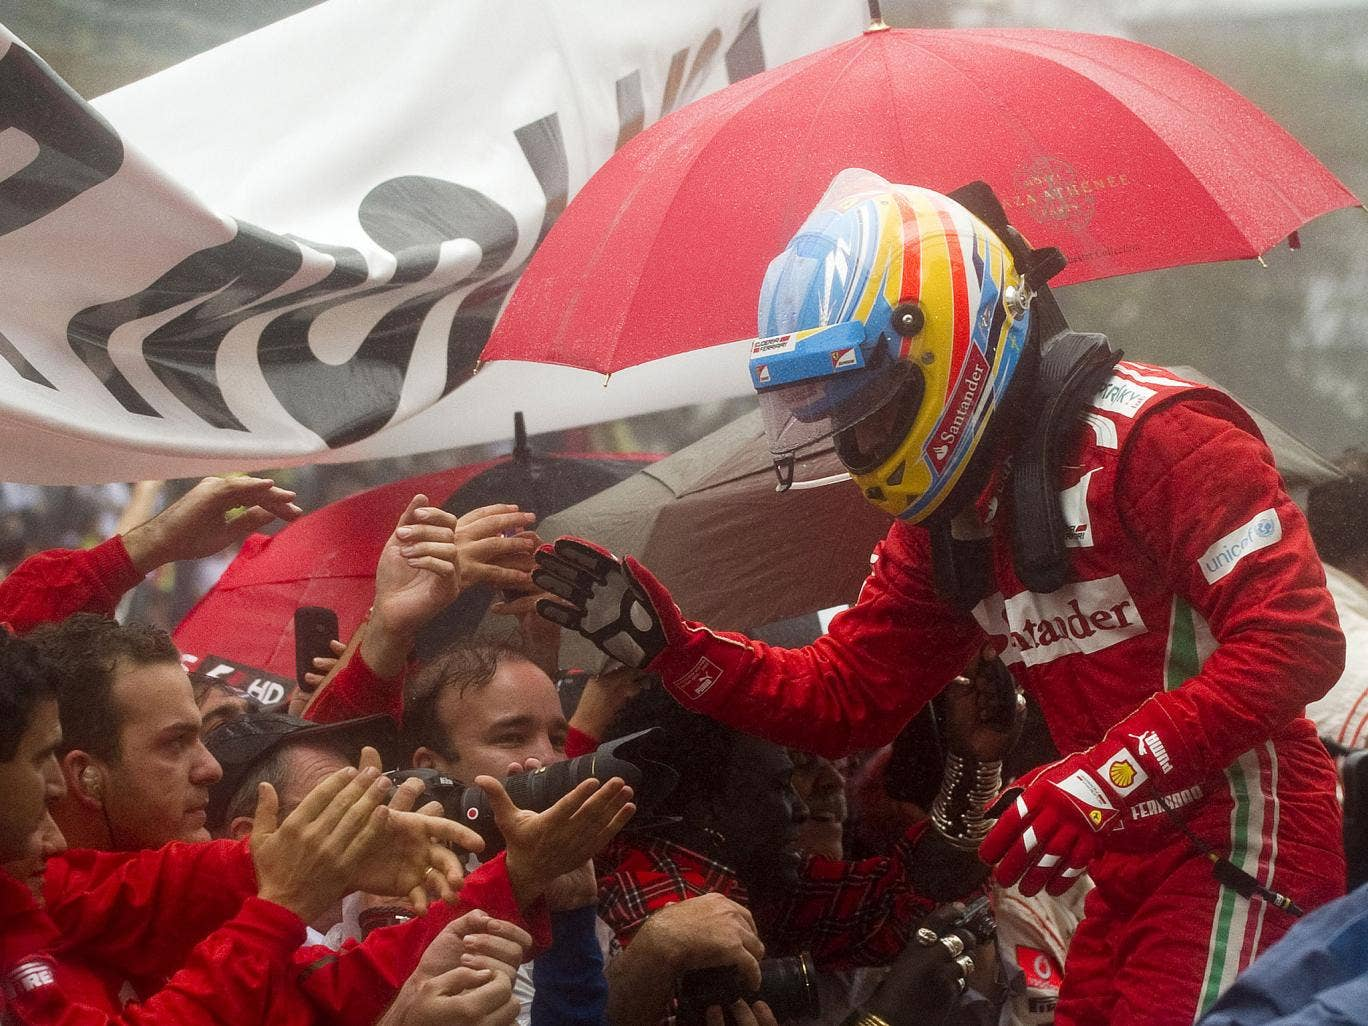 Spanish Formula One driver Fernando Alonso with the Ferrari team after missing out on another championship title in the last race of the season